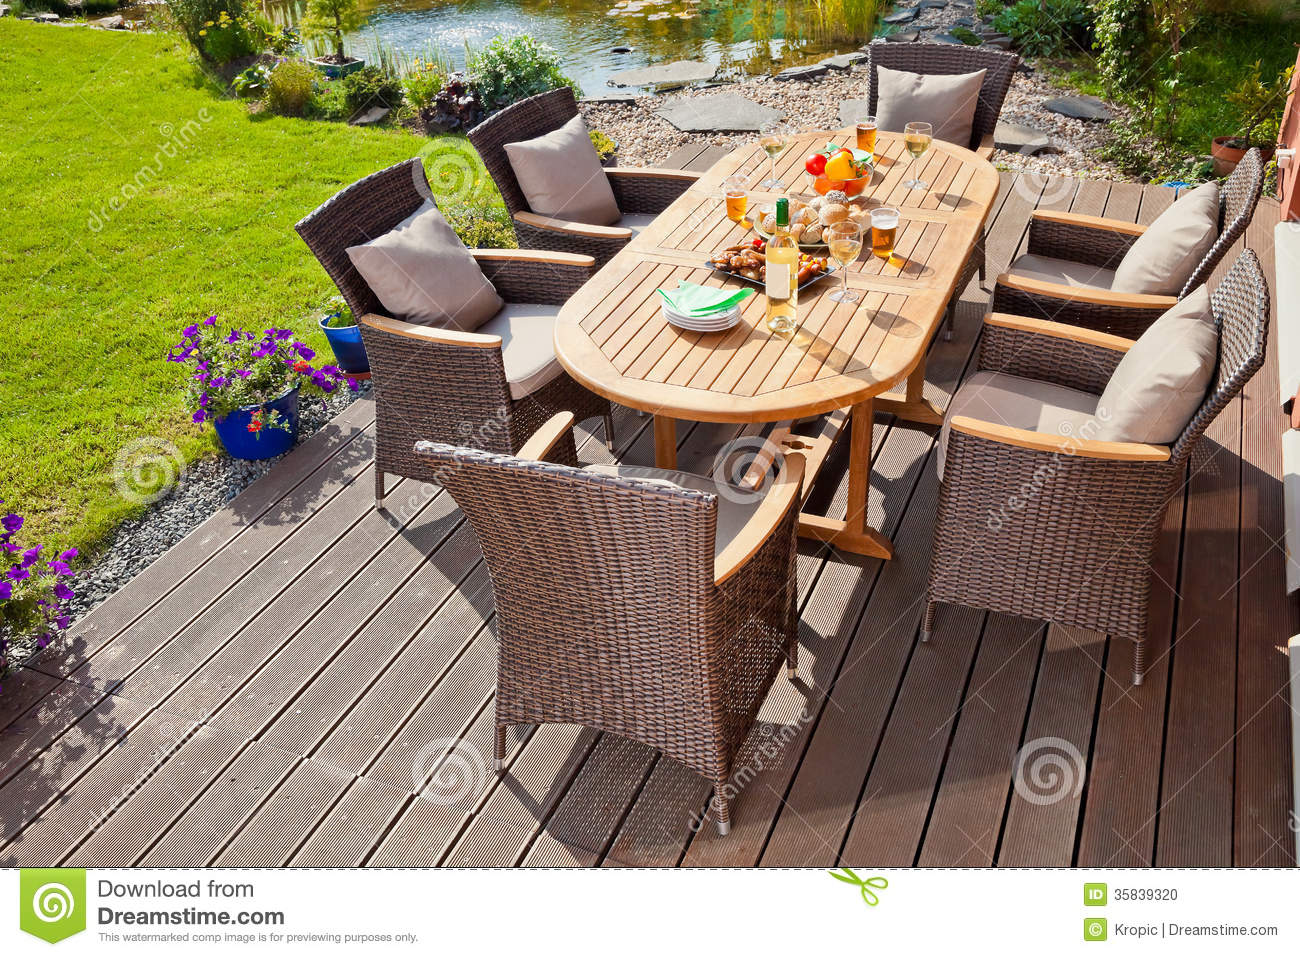 Luxury rattan garden furniture stock photo image 35839320 for Luxury garden furniture